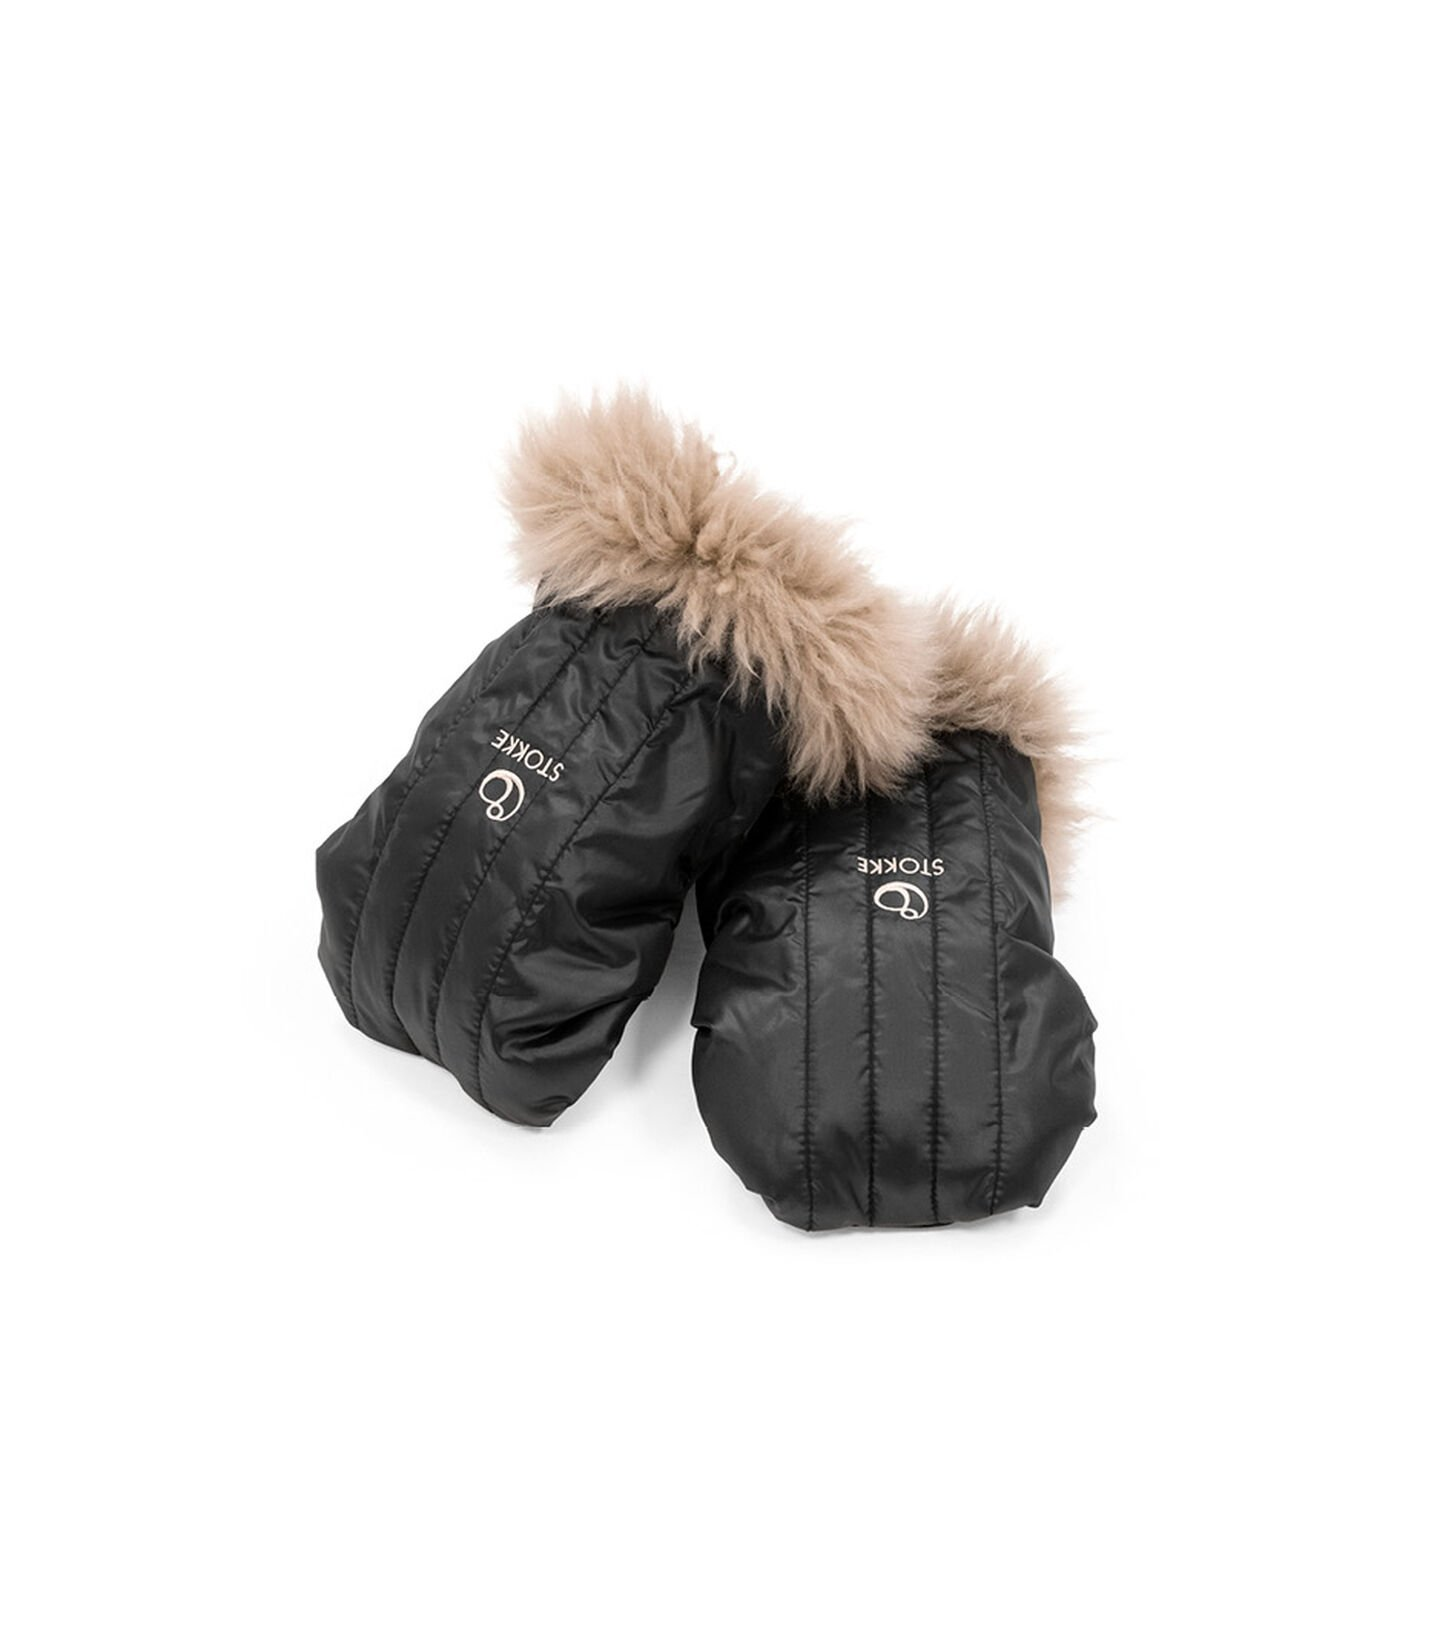 Stokke® Stroller Mittens, Onyx Black. Part of Stokke® Stroller Winter Kit. view 2